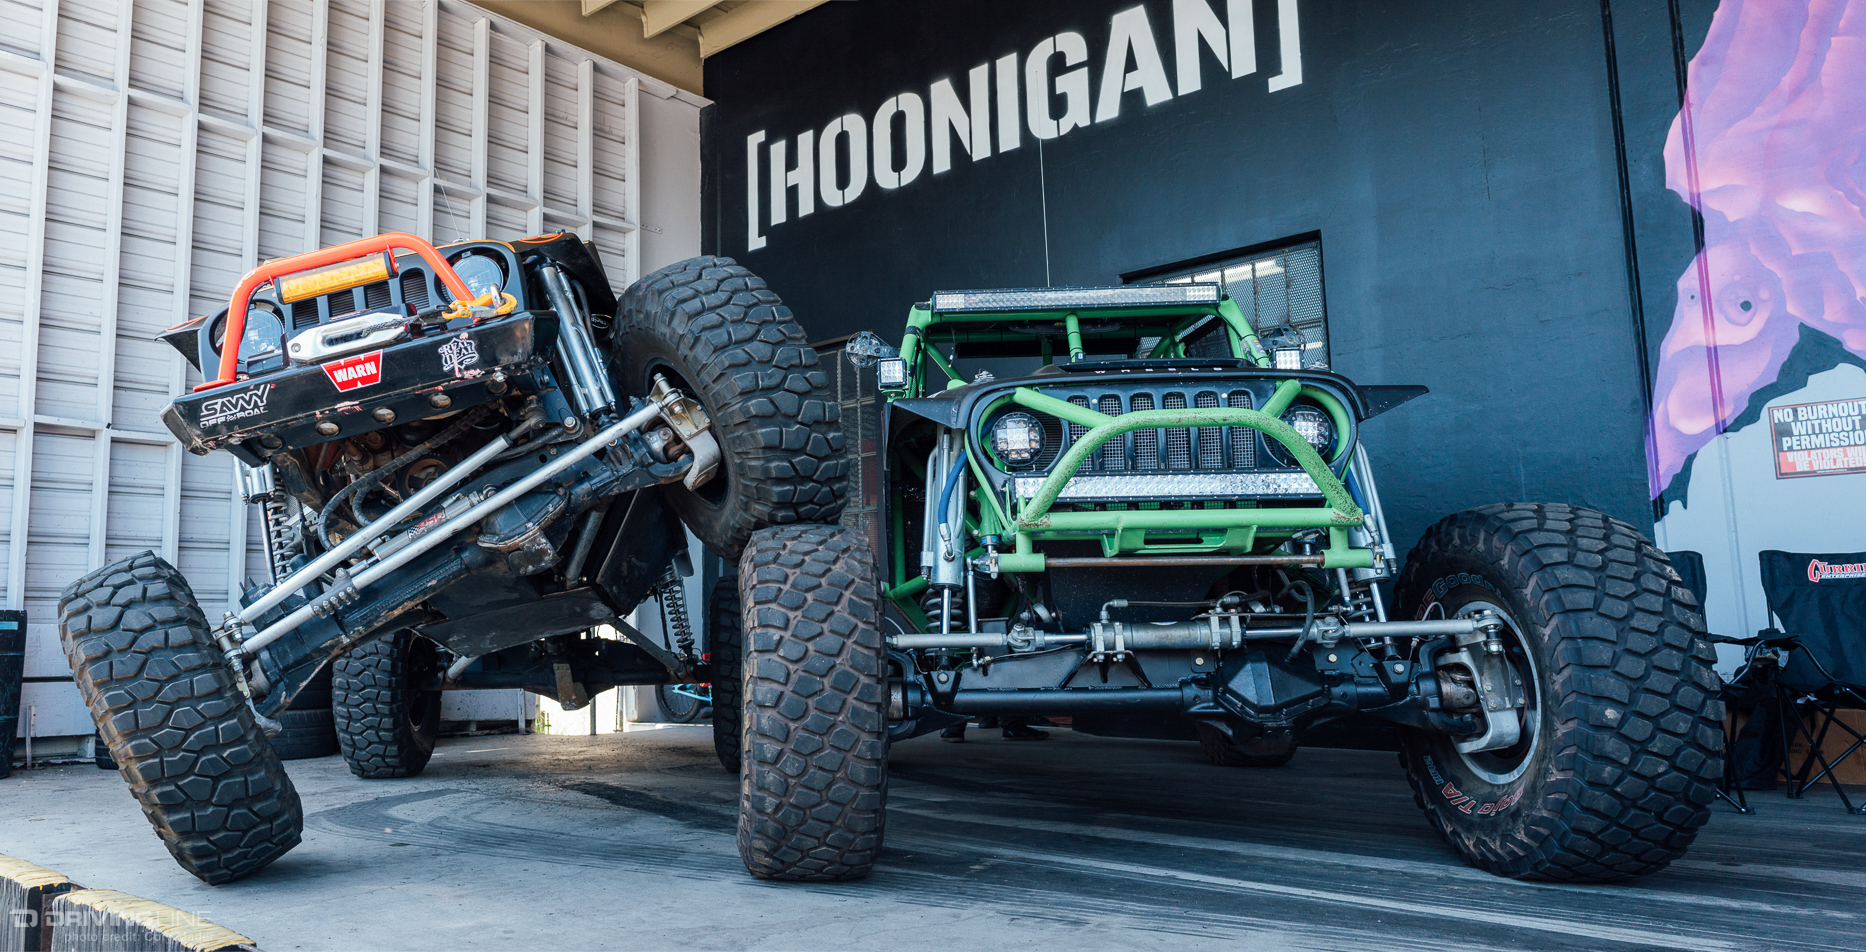 What Is A Hoonigan >> Currie Enterprises Invades The Hoonigan Shop | DrivingLine